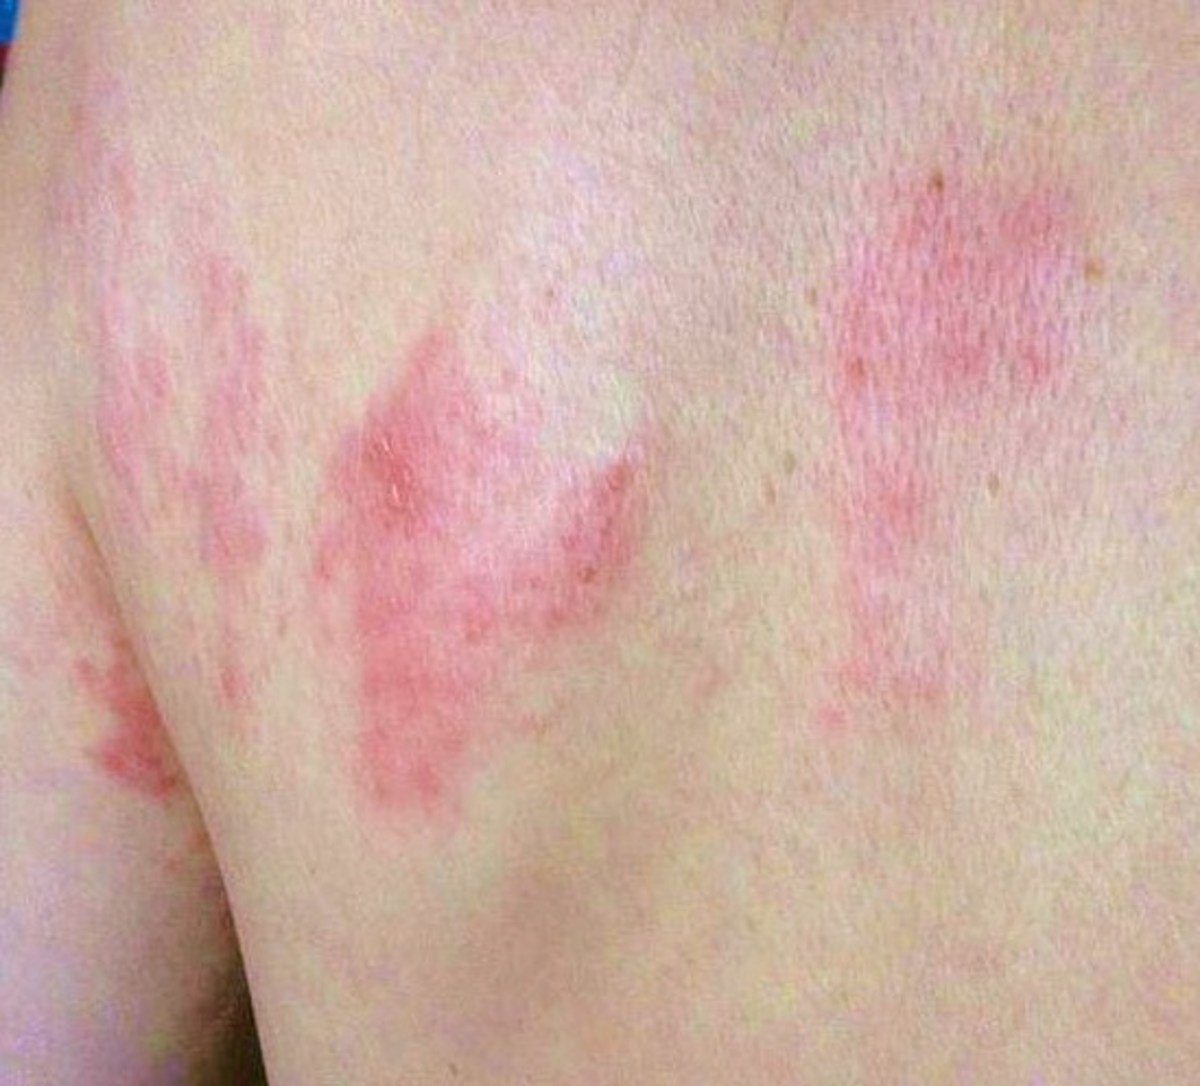 How to Know if You Have Shingles Blisters